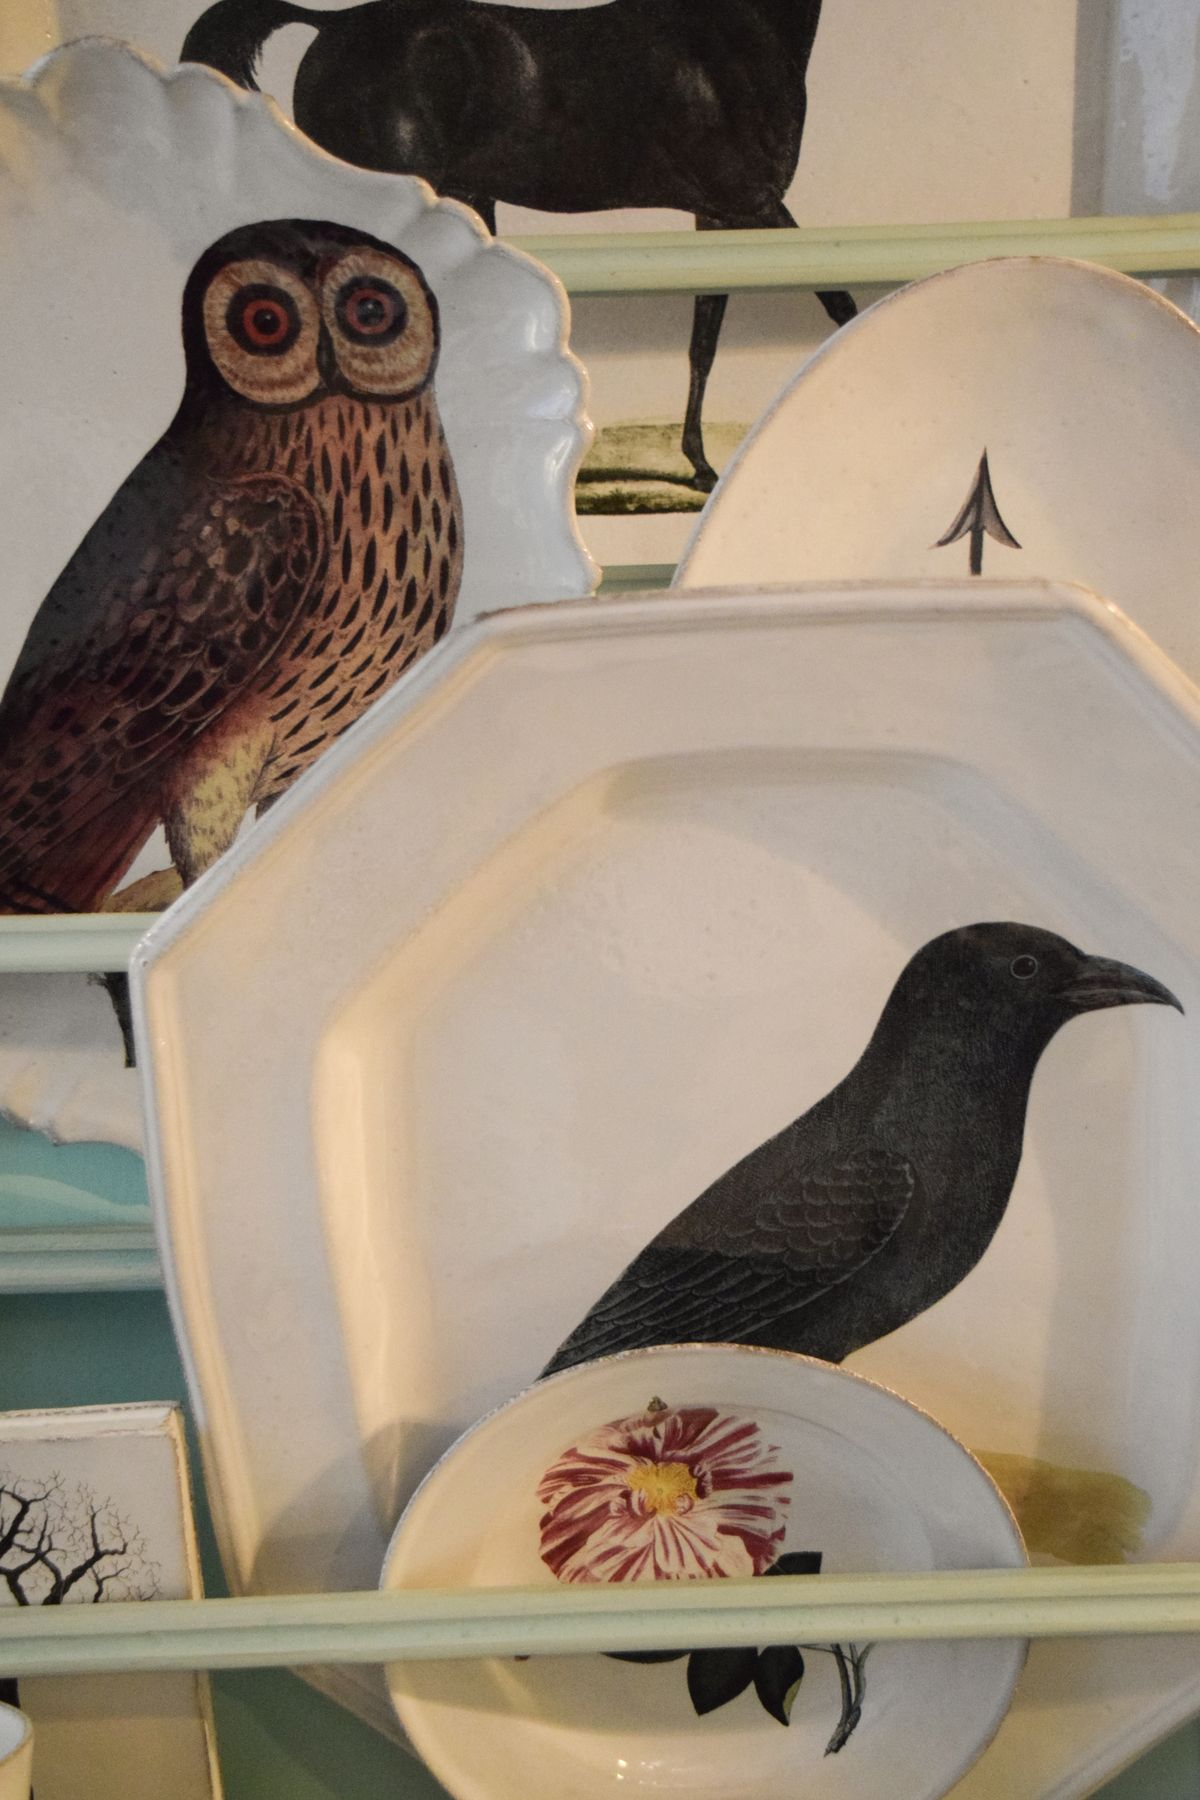 Astier de Villatte Bird Ceramics, Paris